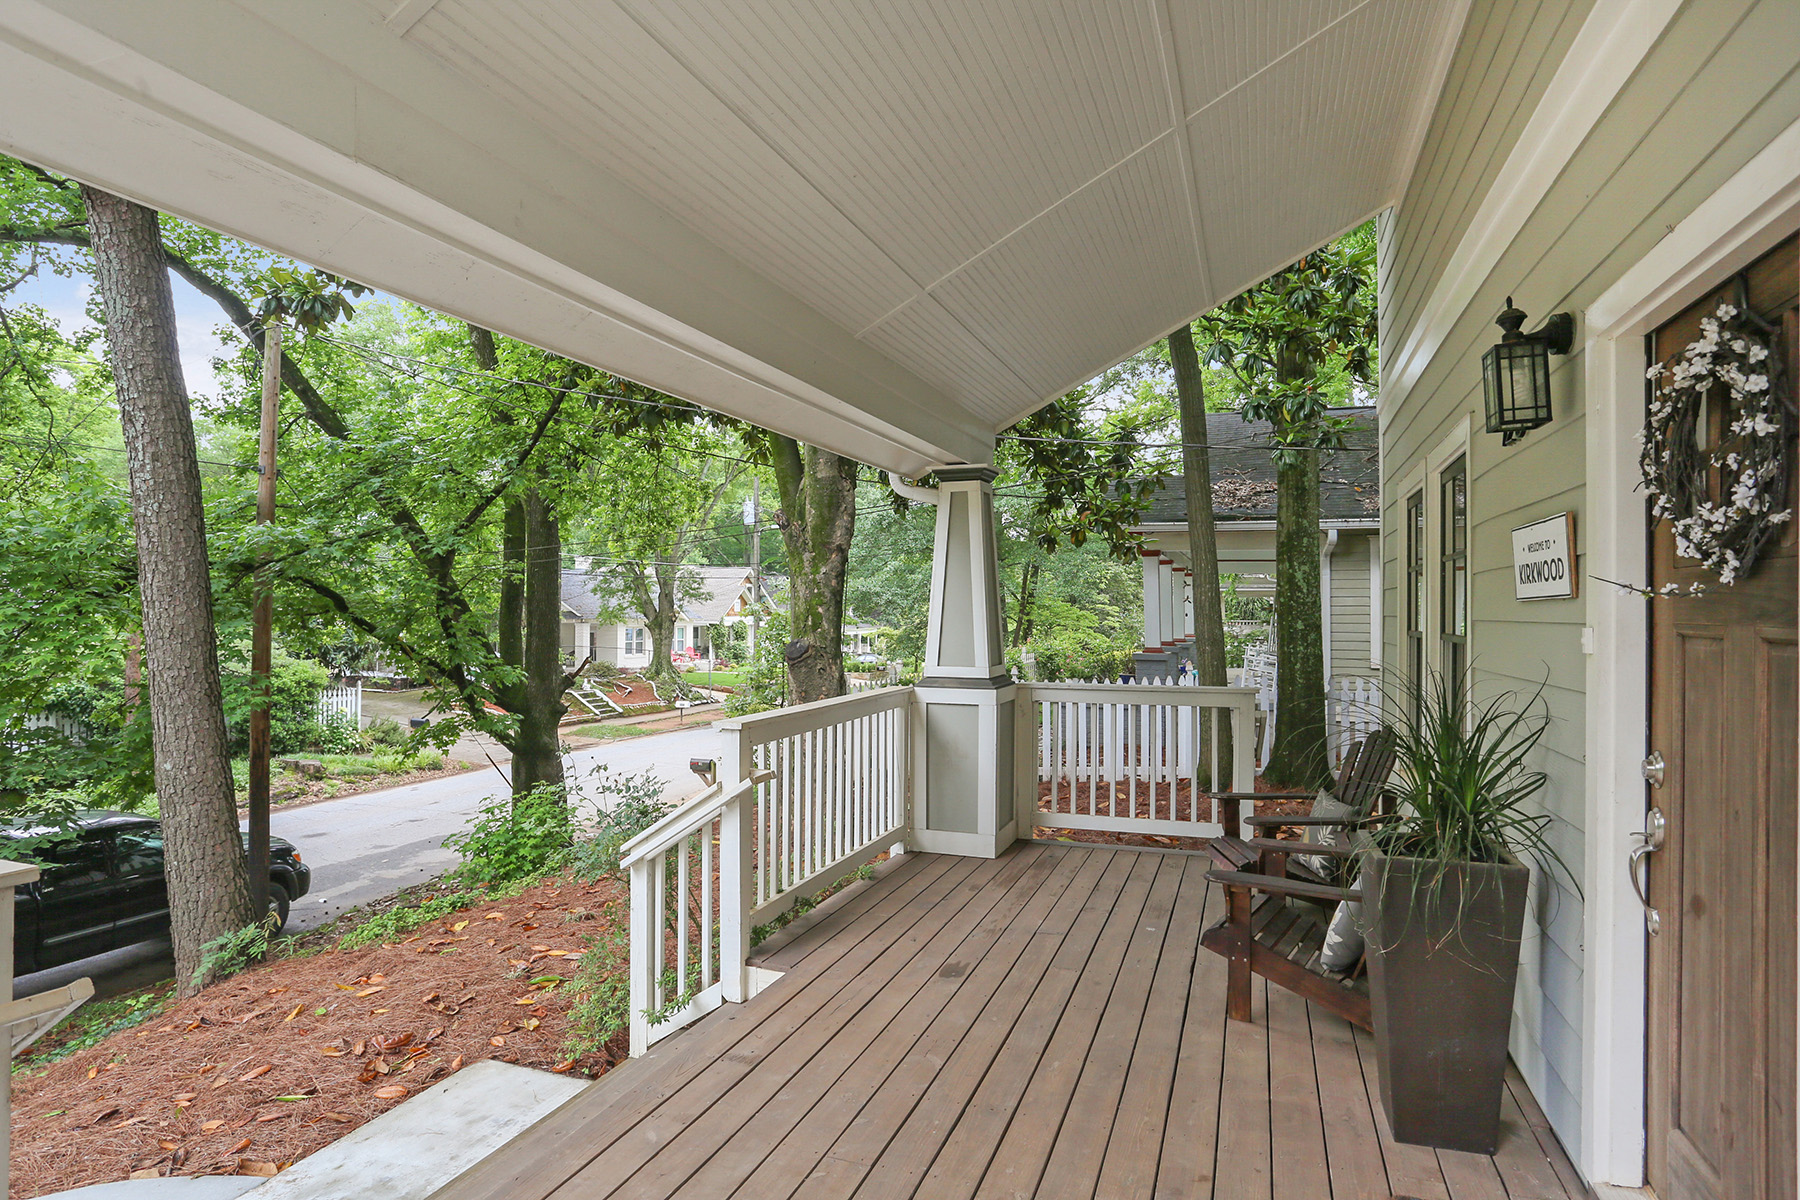 Single Family Home for Sale at Amazing Kirkwood Home Renovated To The Studs in 2013! 123 Howard St Atlanta, Georgia 30317 United States